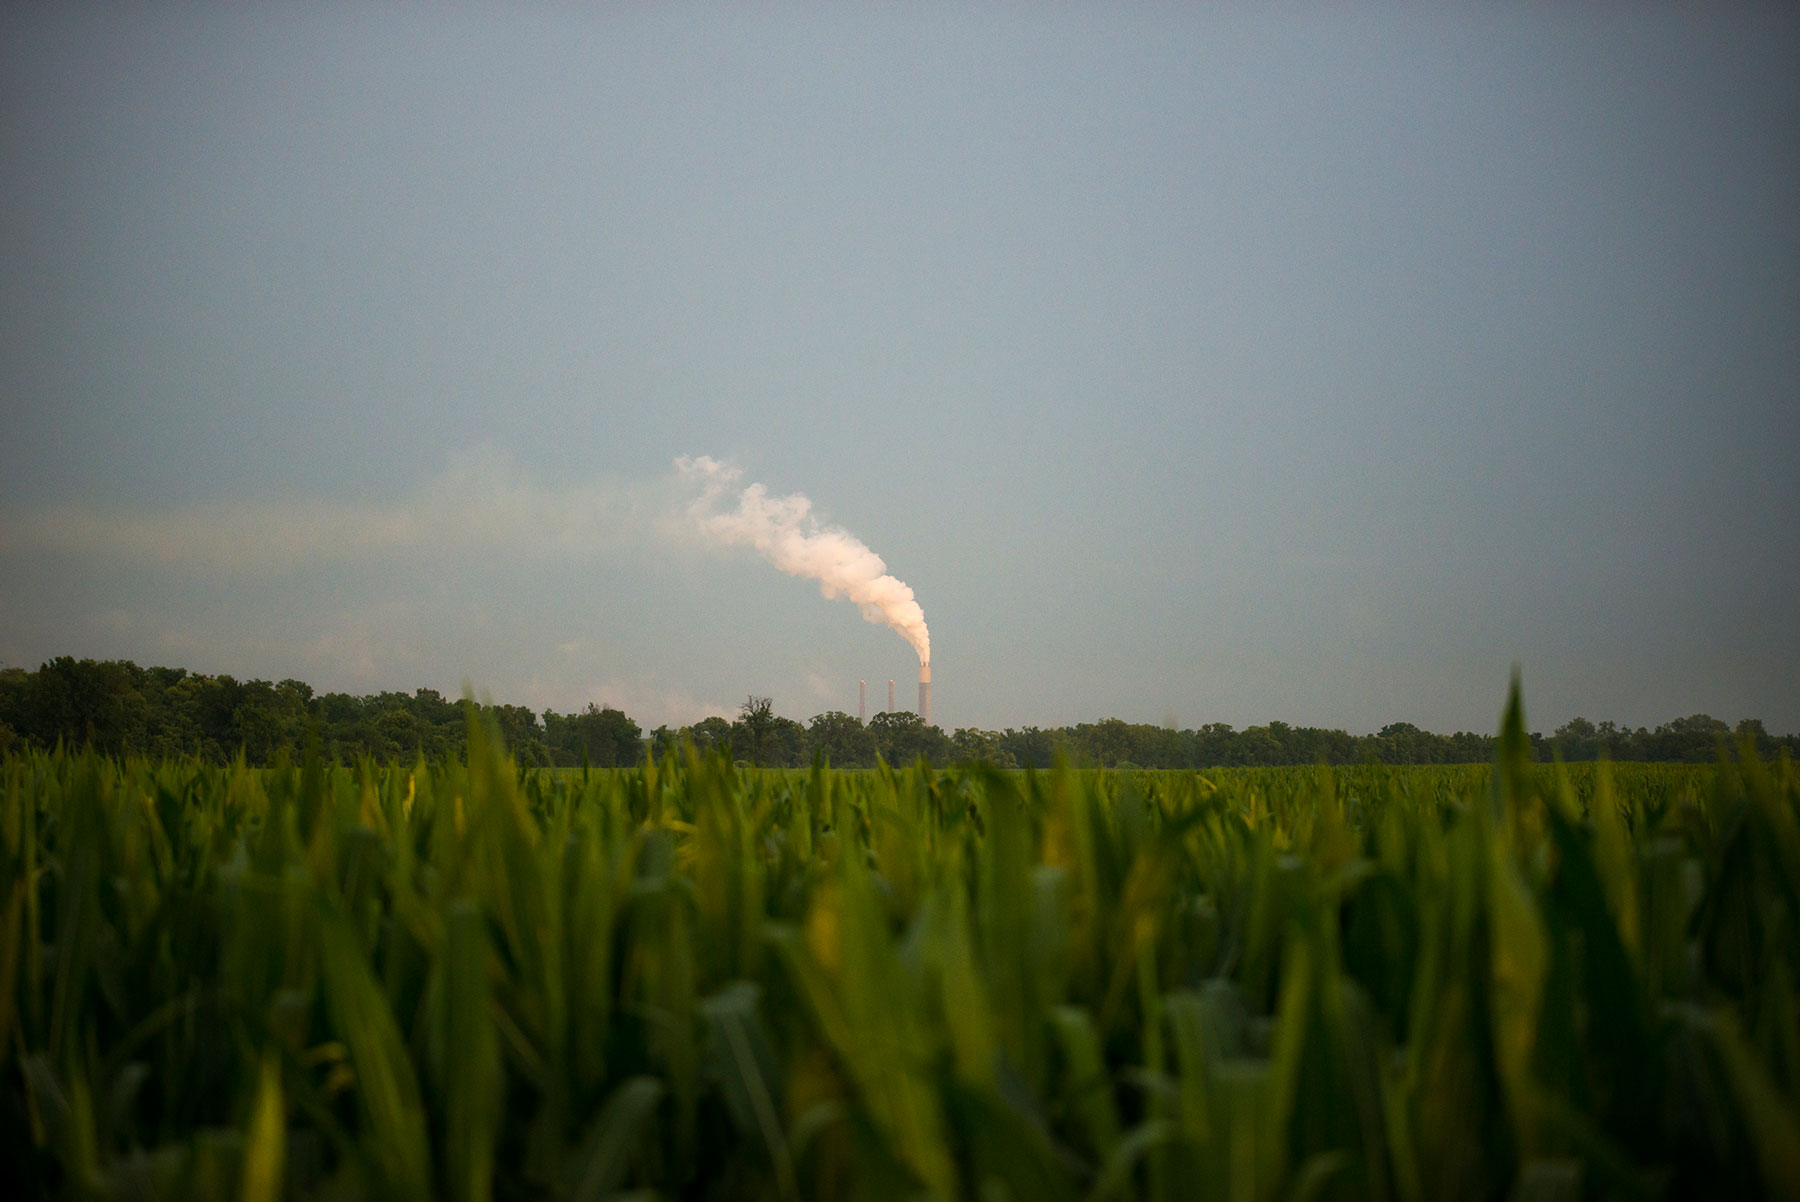 An industrial plant puffs out smoke in Newport, Indiana. It's the town's primary employer, but the decline of industry and regulations on coal here have greatly decreased the town's population and have hit its economy. (Roman Knertser/News21)